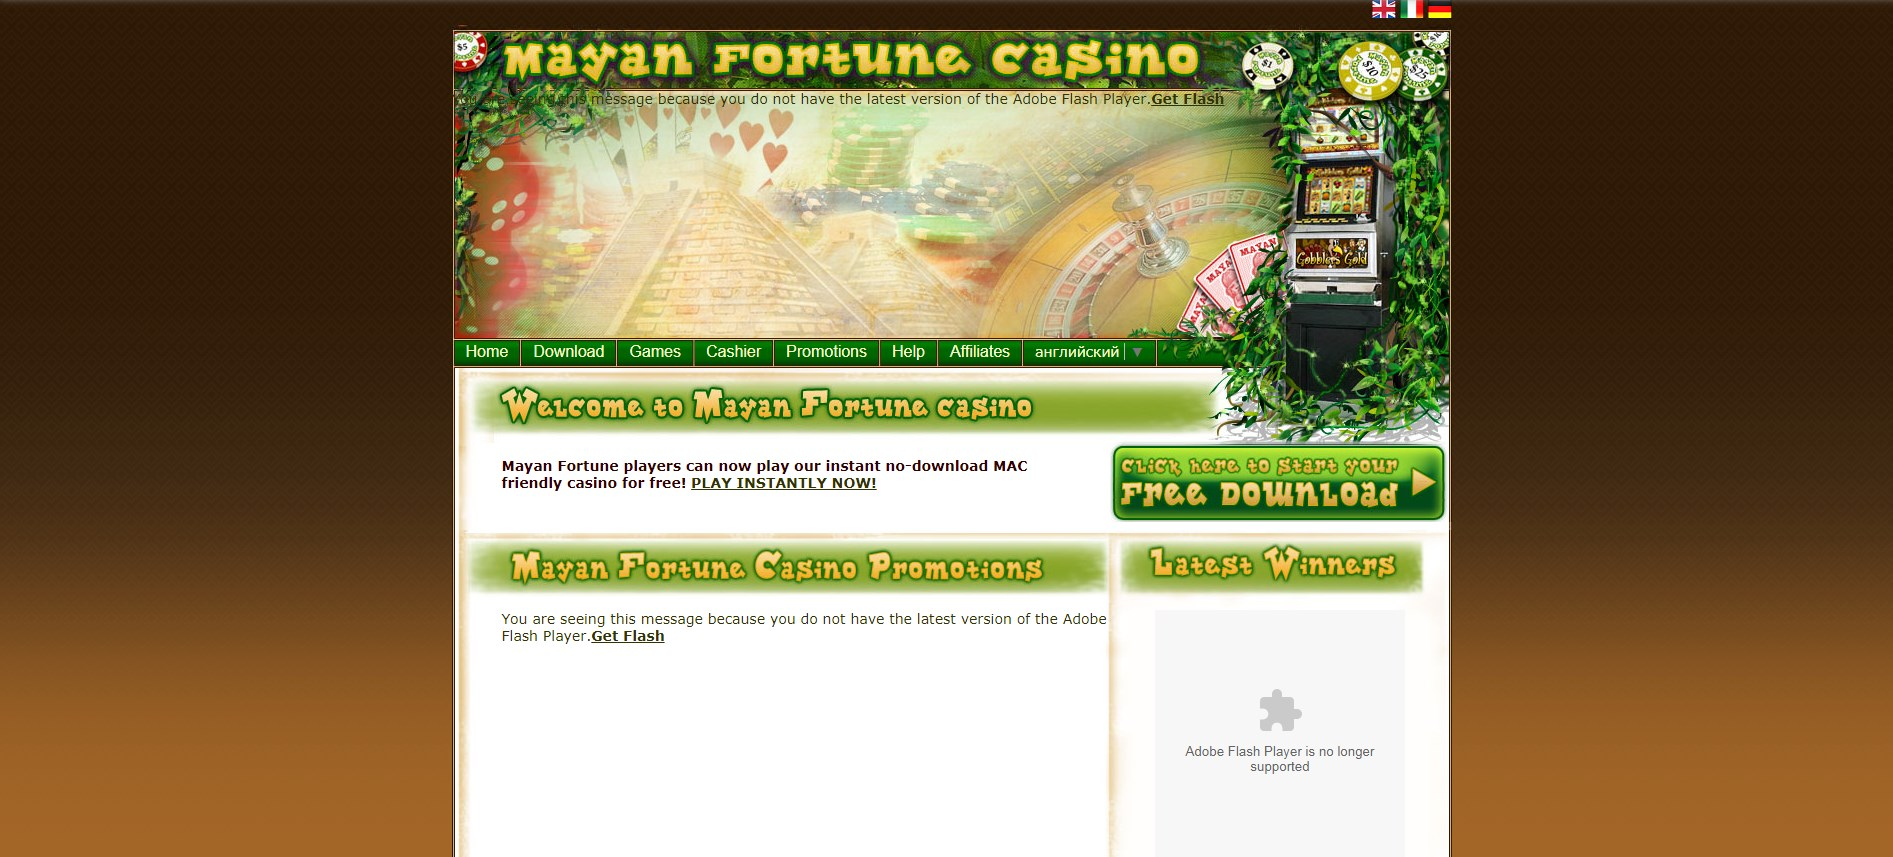 Mayan Fortune Casino Review